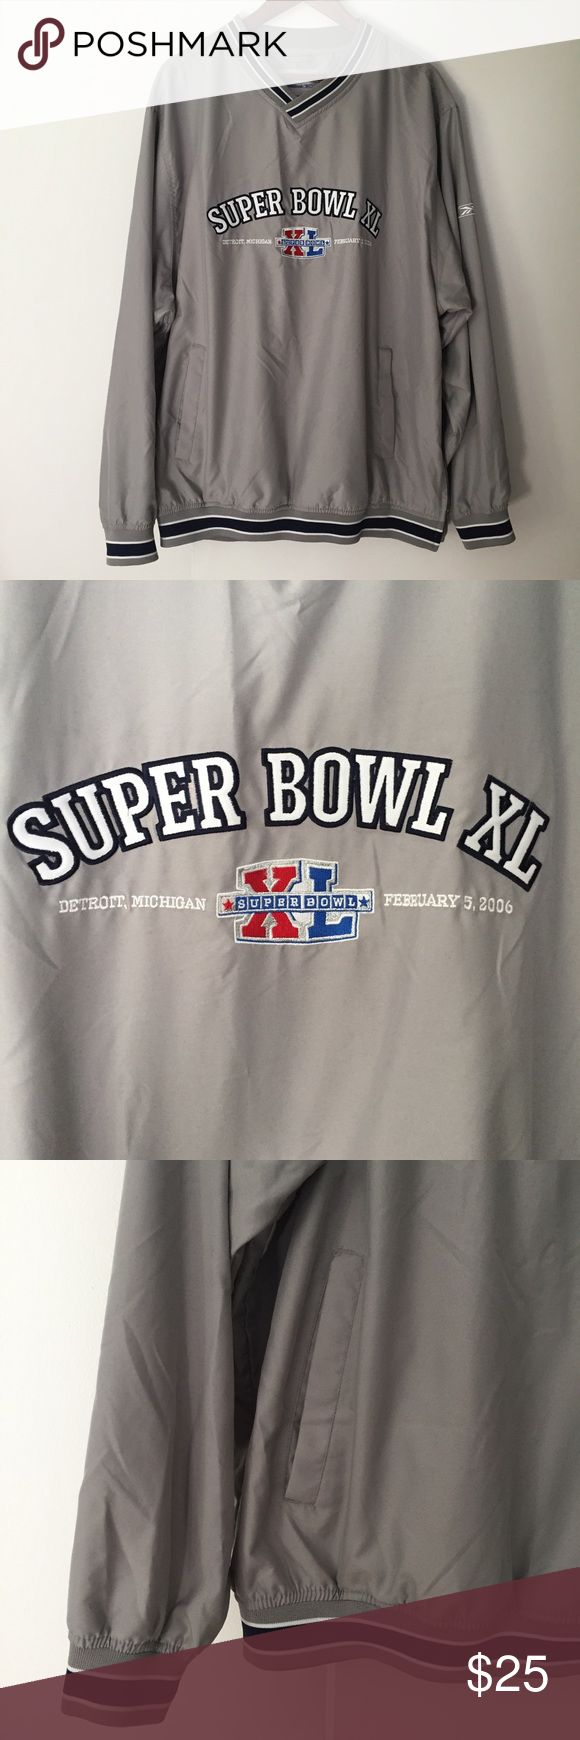 Reebok Official NFL Super Bowl XL pullover sz L Reebok Official NFL Super Bowl XL pullover. Size: L. Gray. Front logo. Front pockets. Great preowned condition. Super Bowl XL 2006 played in Detroit, Michigan at Ford Field - Steelers defeated the Seahawks. Reebok Jackets & Coats